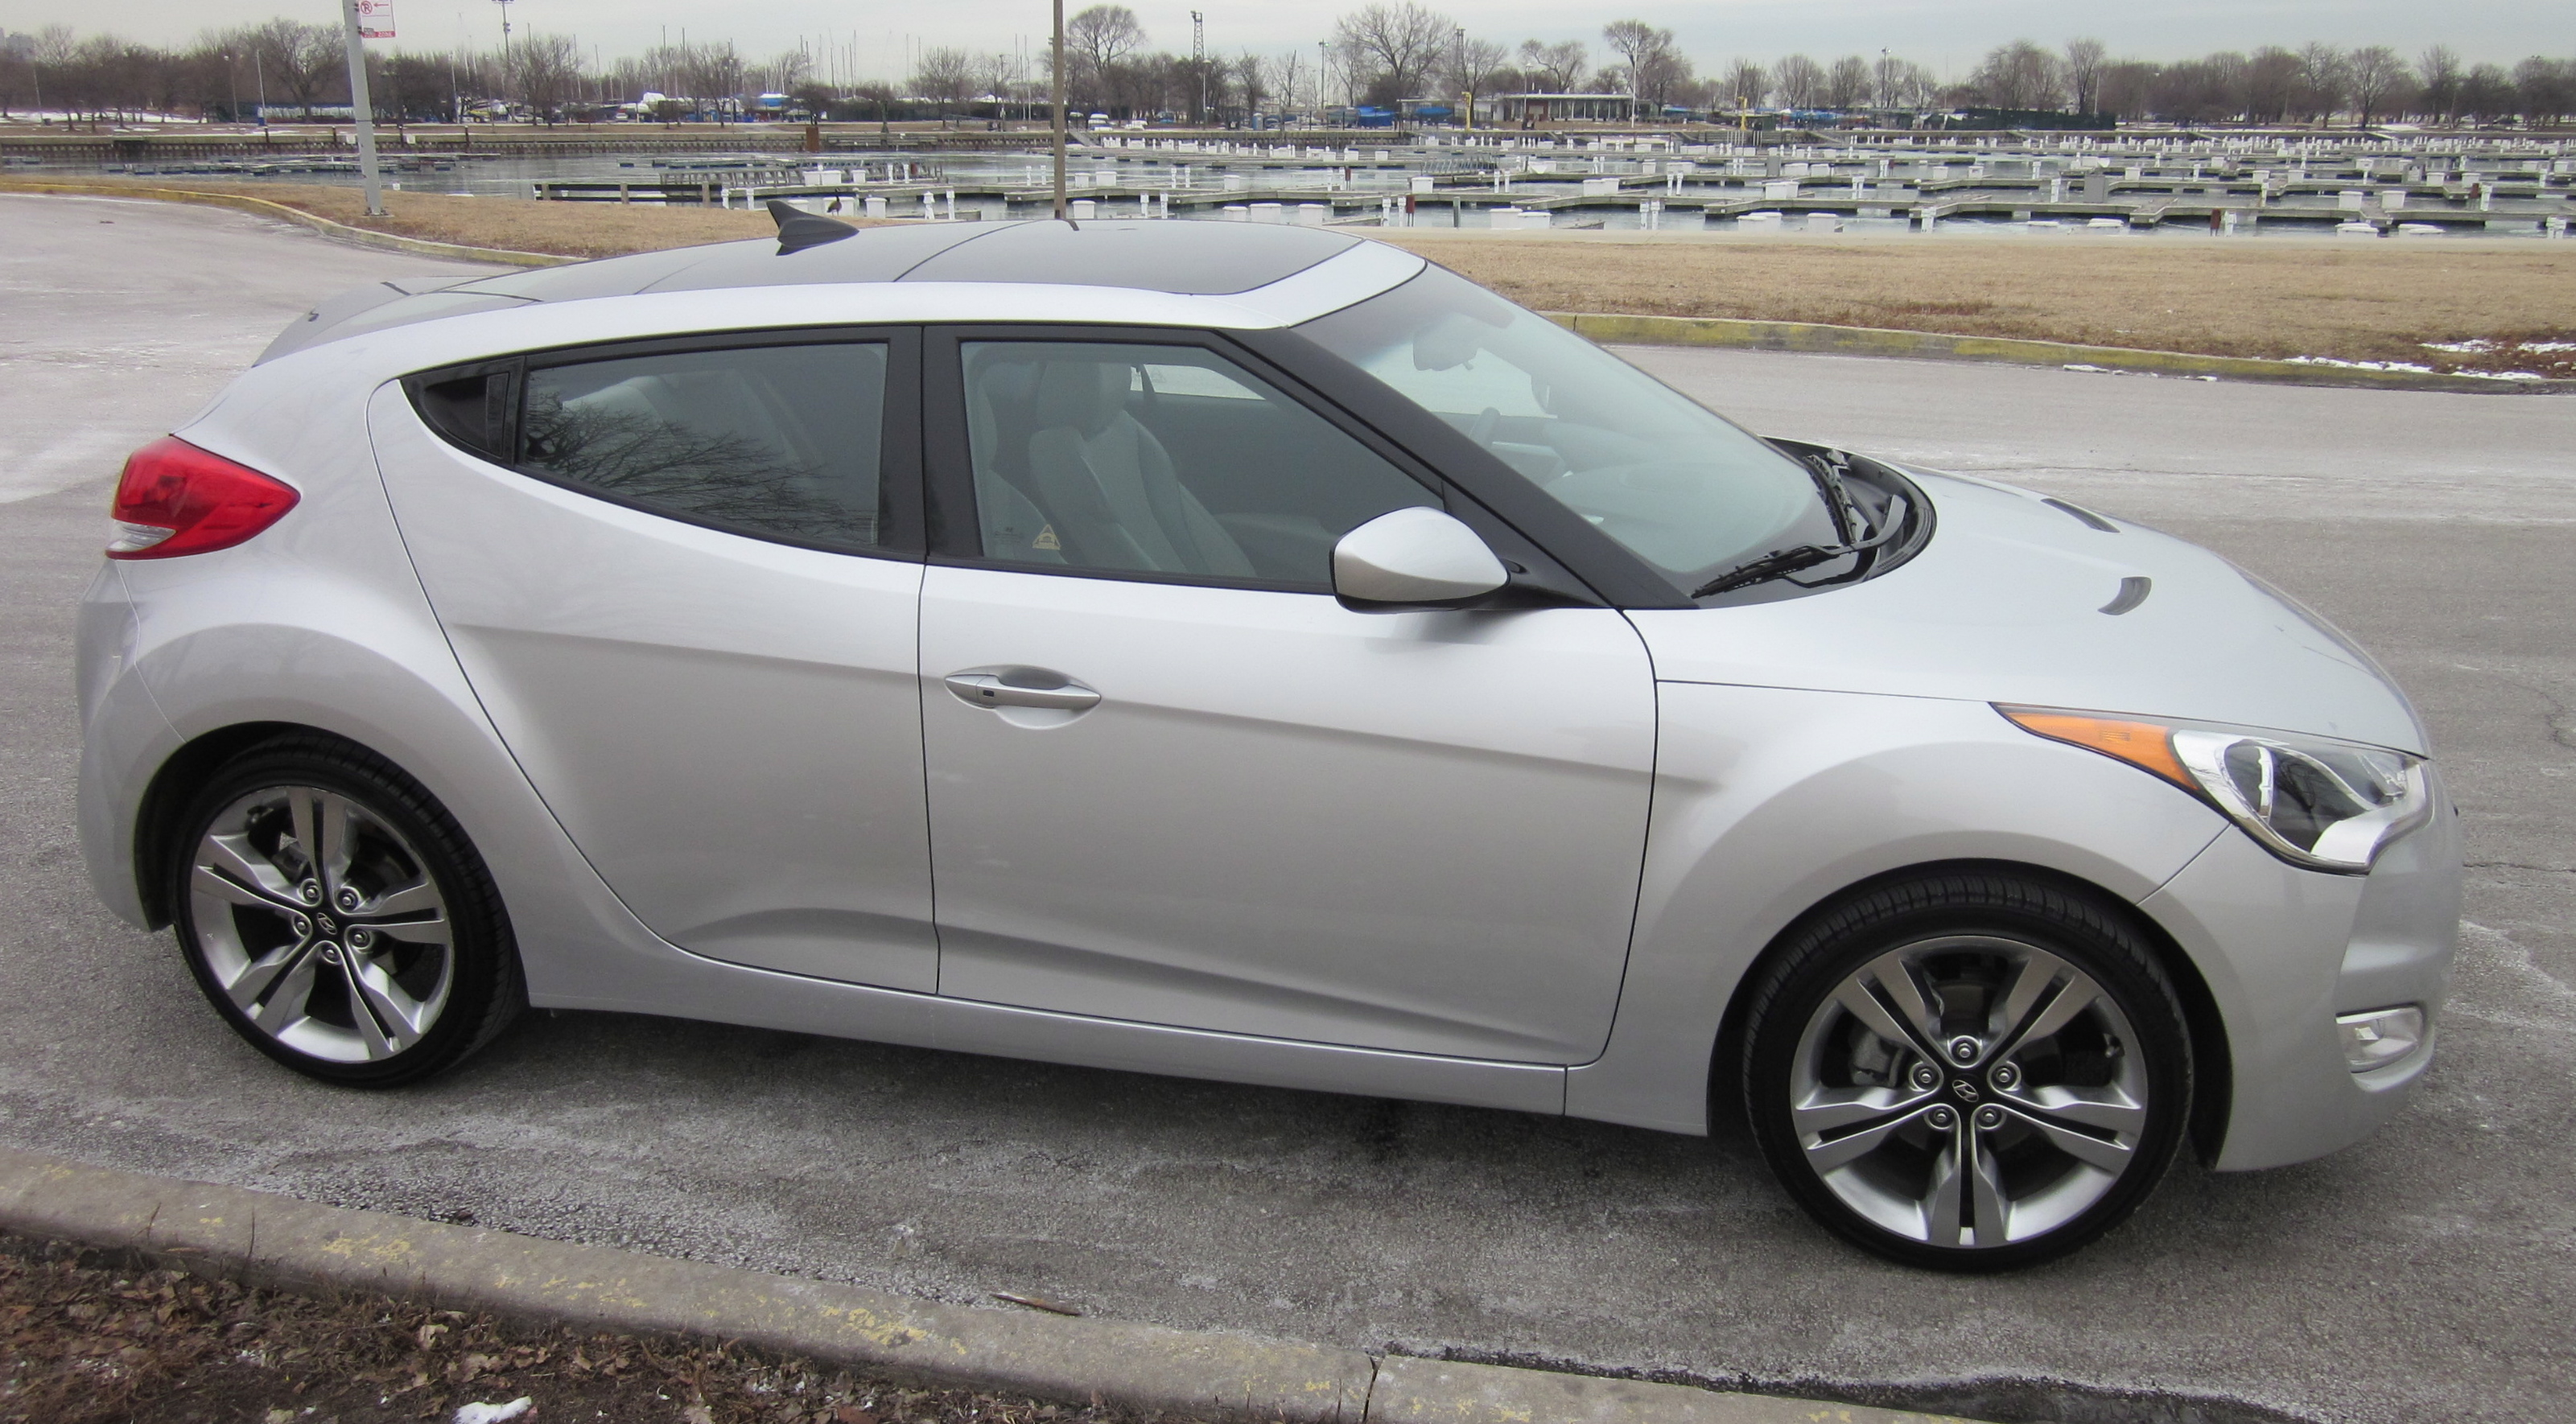 2012 HYUNDAI VELOSTER (select To View Enlarged Photo)